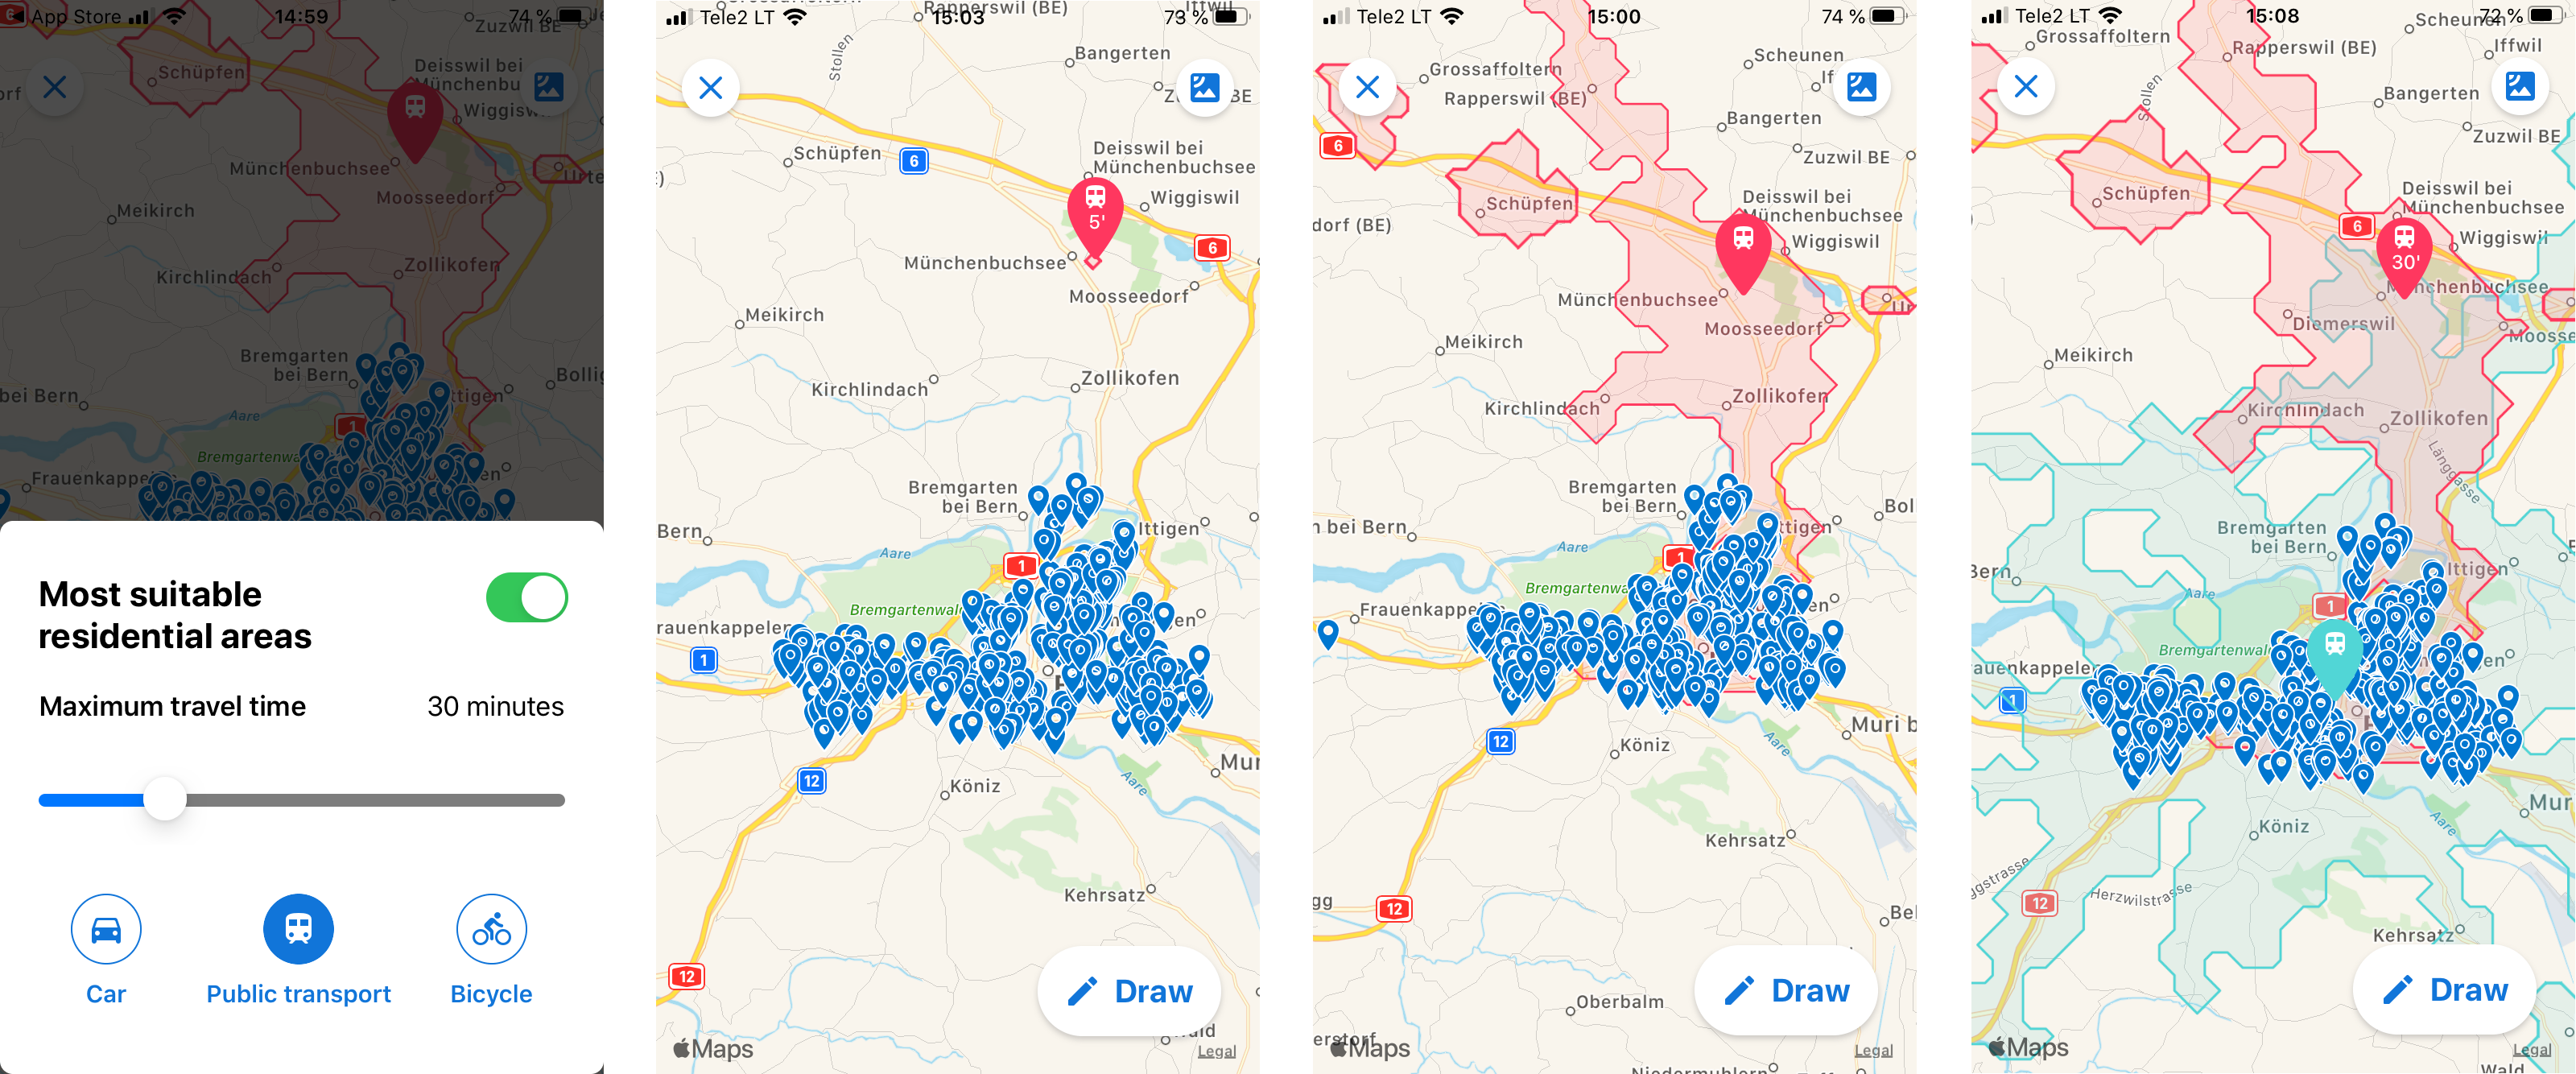 Property search filtered by travel time